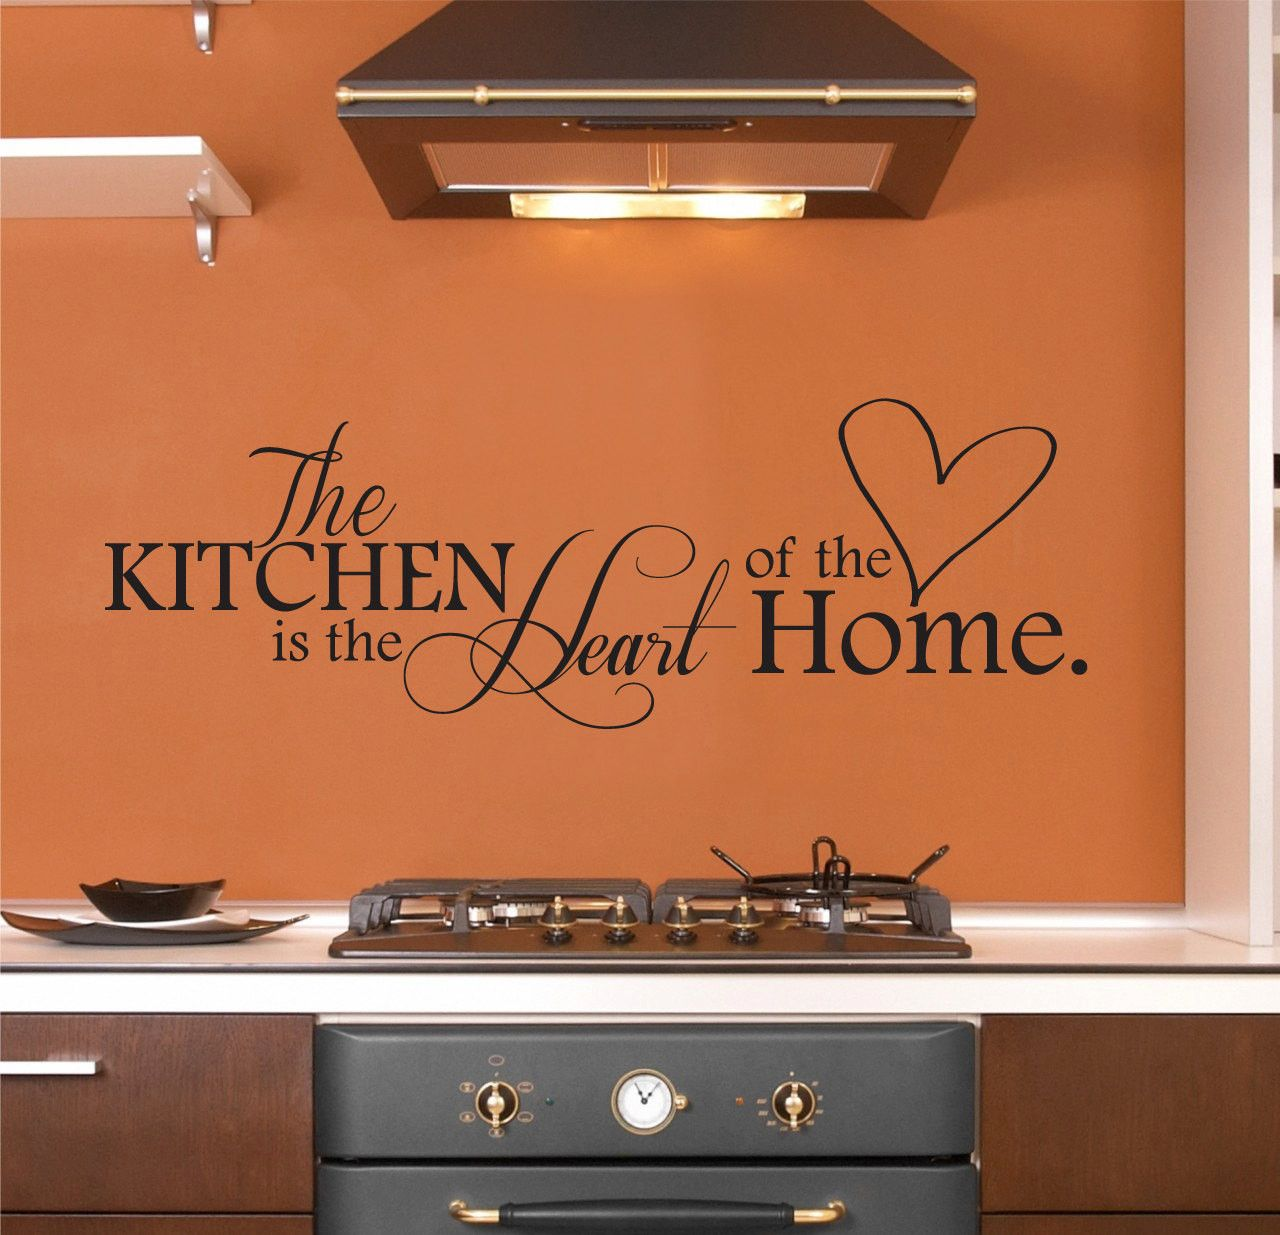 The Kitchen is the Heart of the Home Wall Decal, Kitchen Wall Decor Wall Art